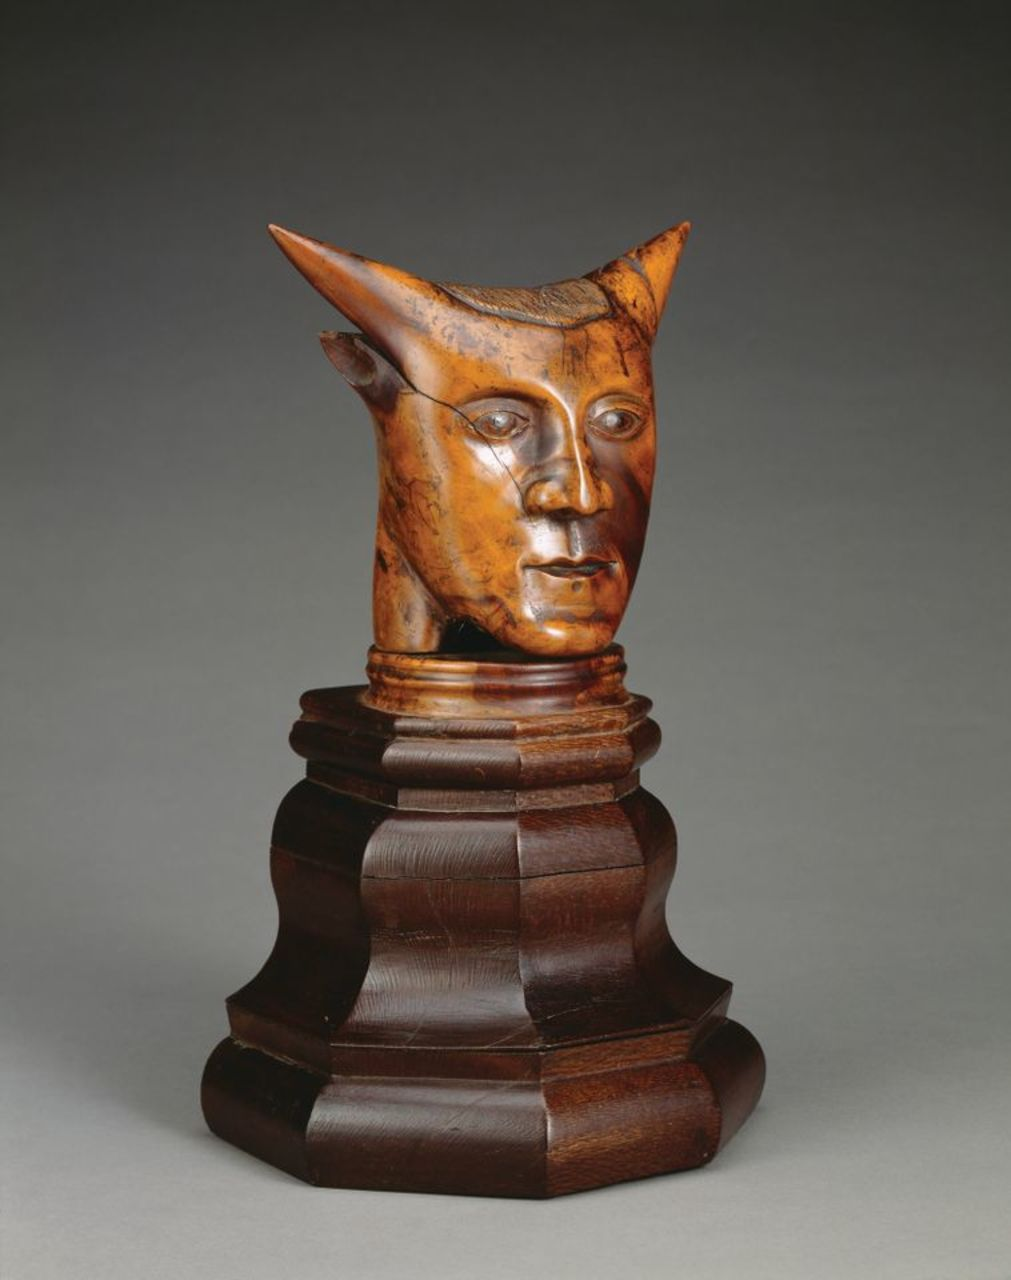 """""""A very rare sculpture of Gauguin"""" bought the Getty Museum for $5 million. But it's a fake"""